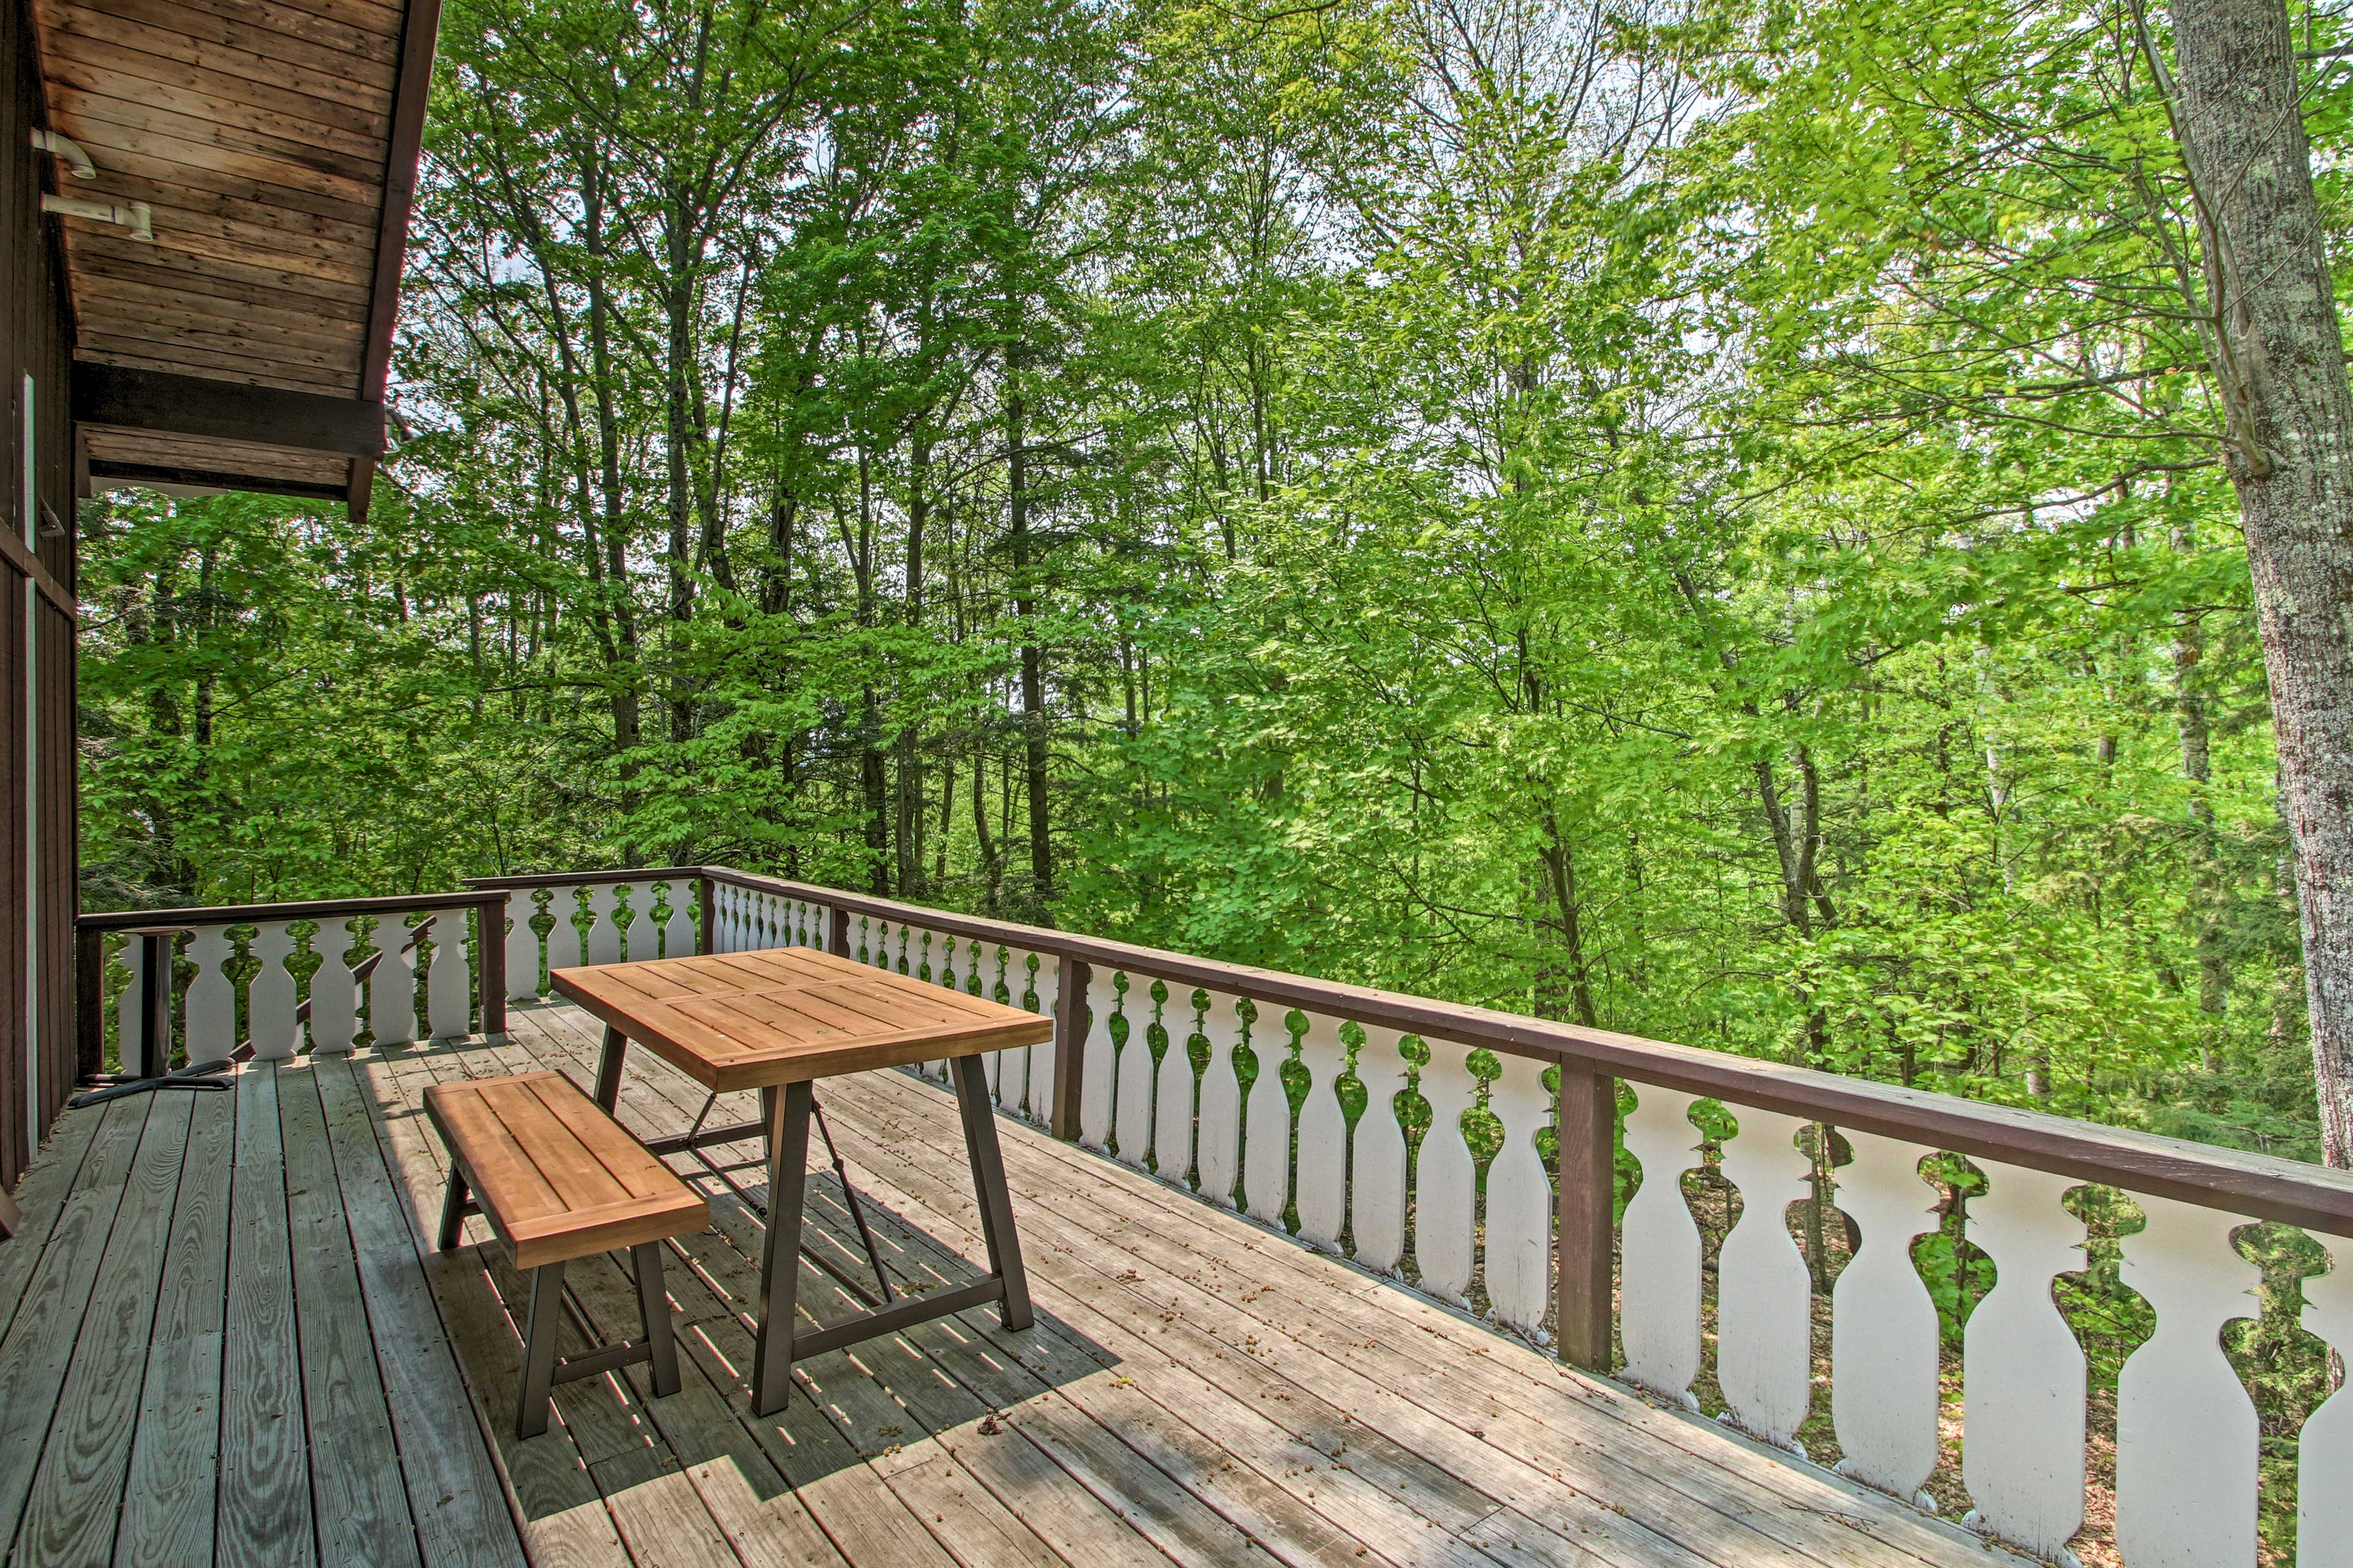 The deck is the perfect spot to enjoy a glass of wine!